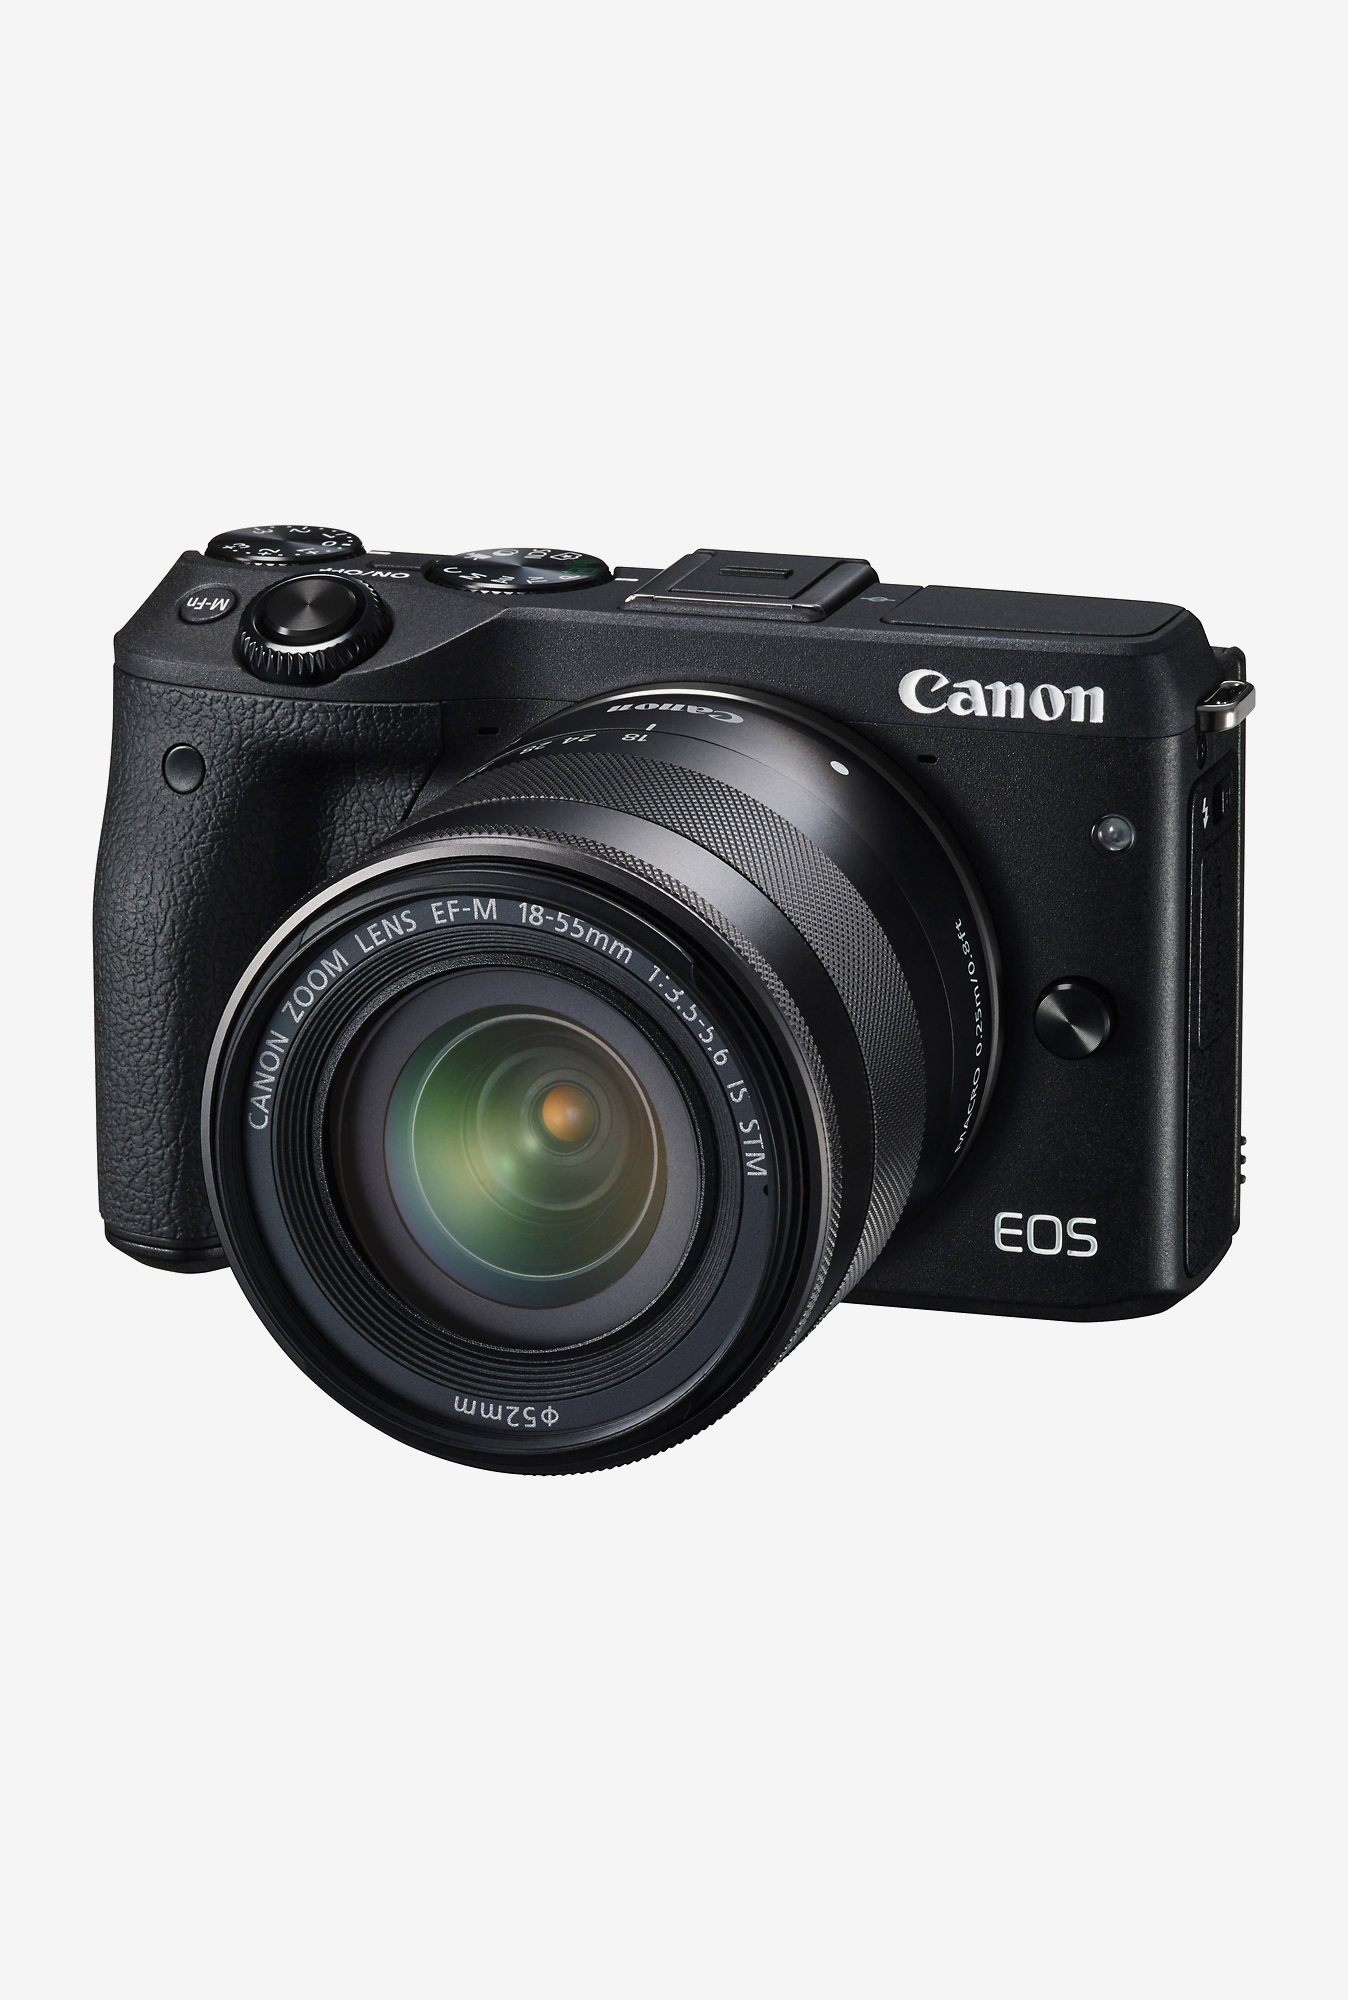 Canon EOS M3 Mirrorless Camera with EF-M18-55 IS STM Lens